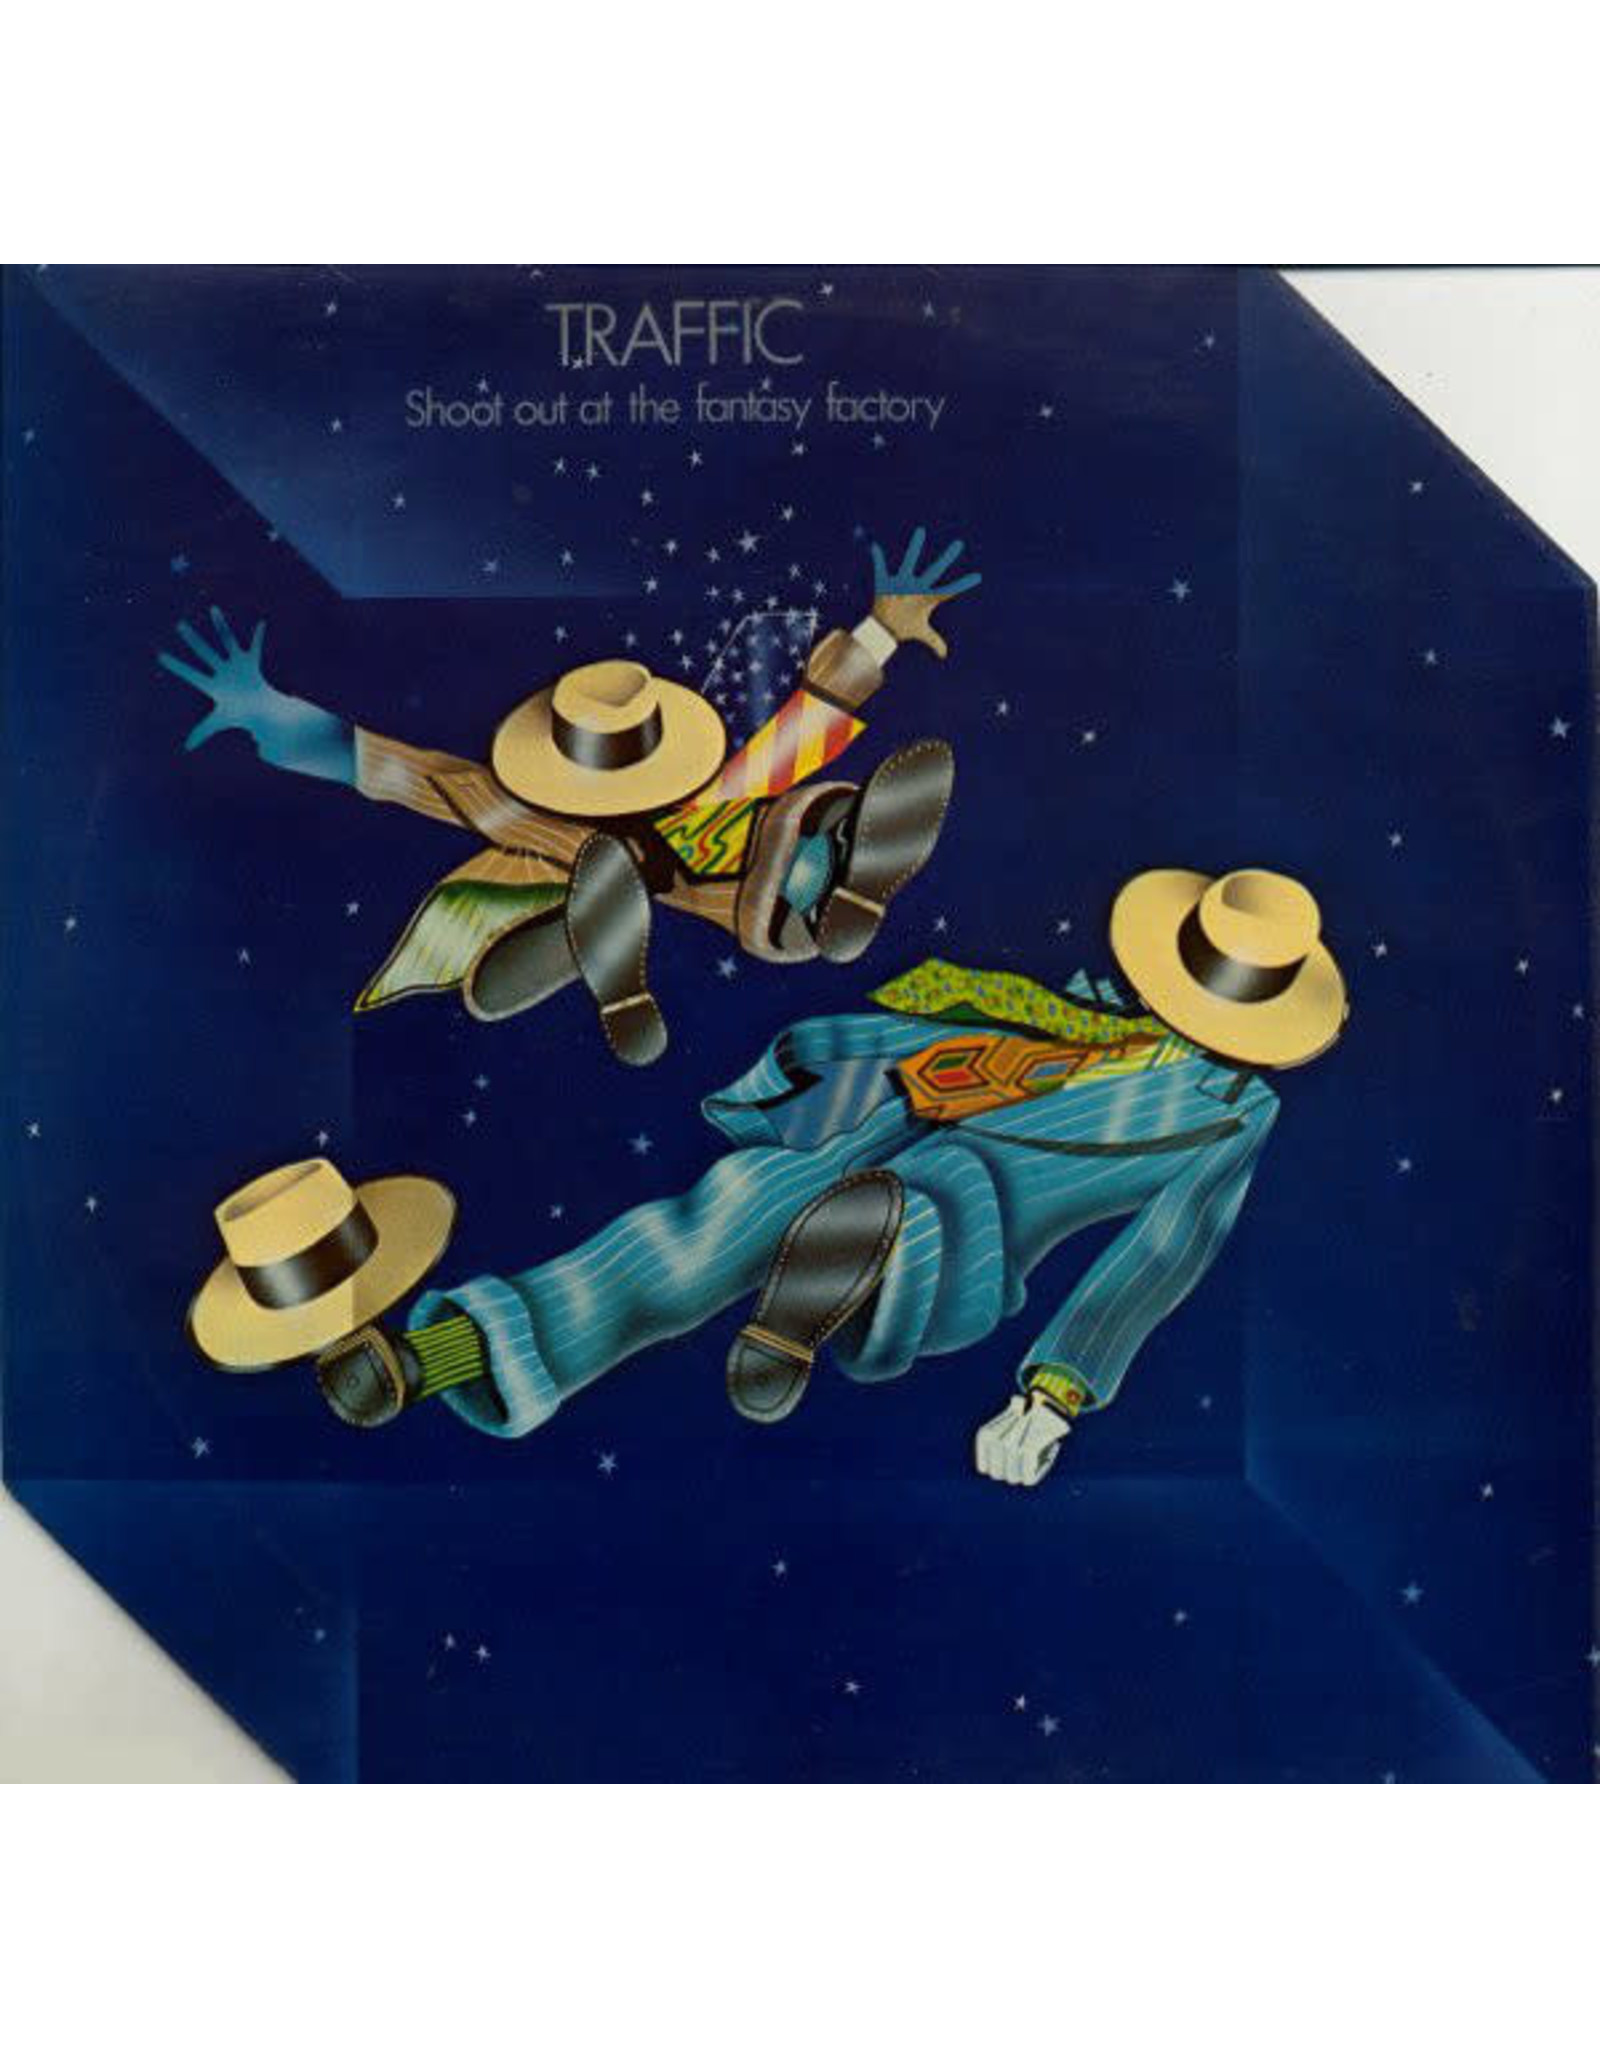 Traffic - Shoot Out at the Fantasy Factory LP